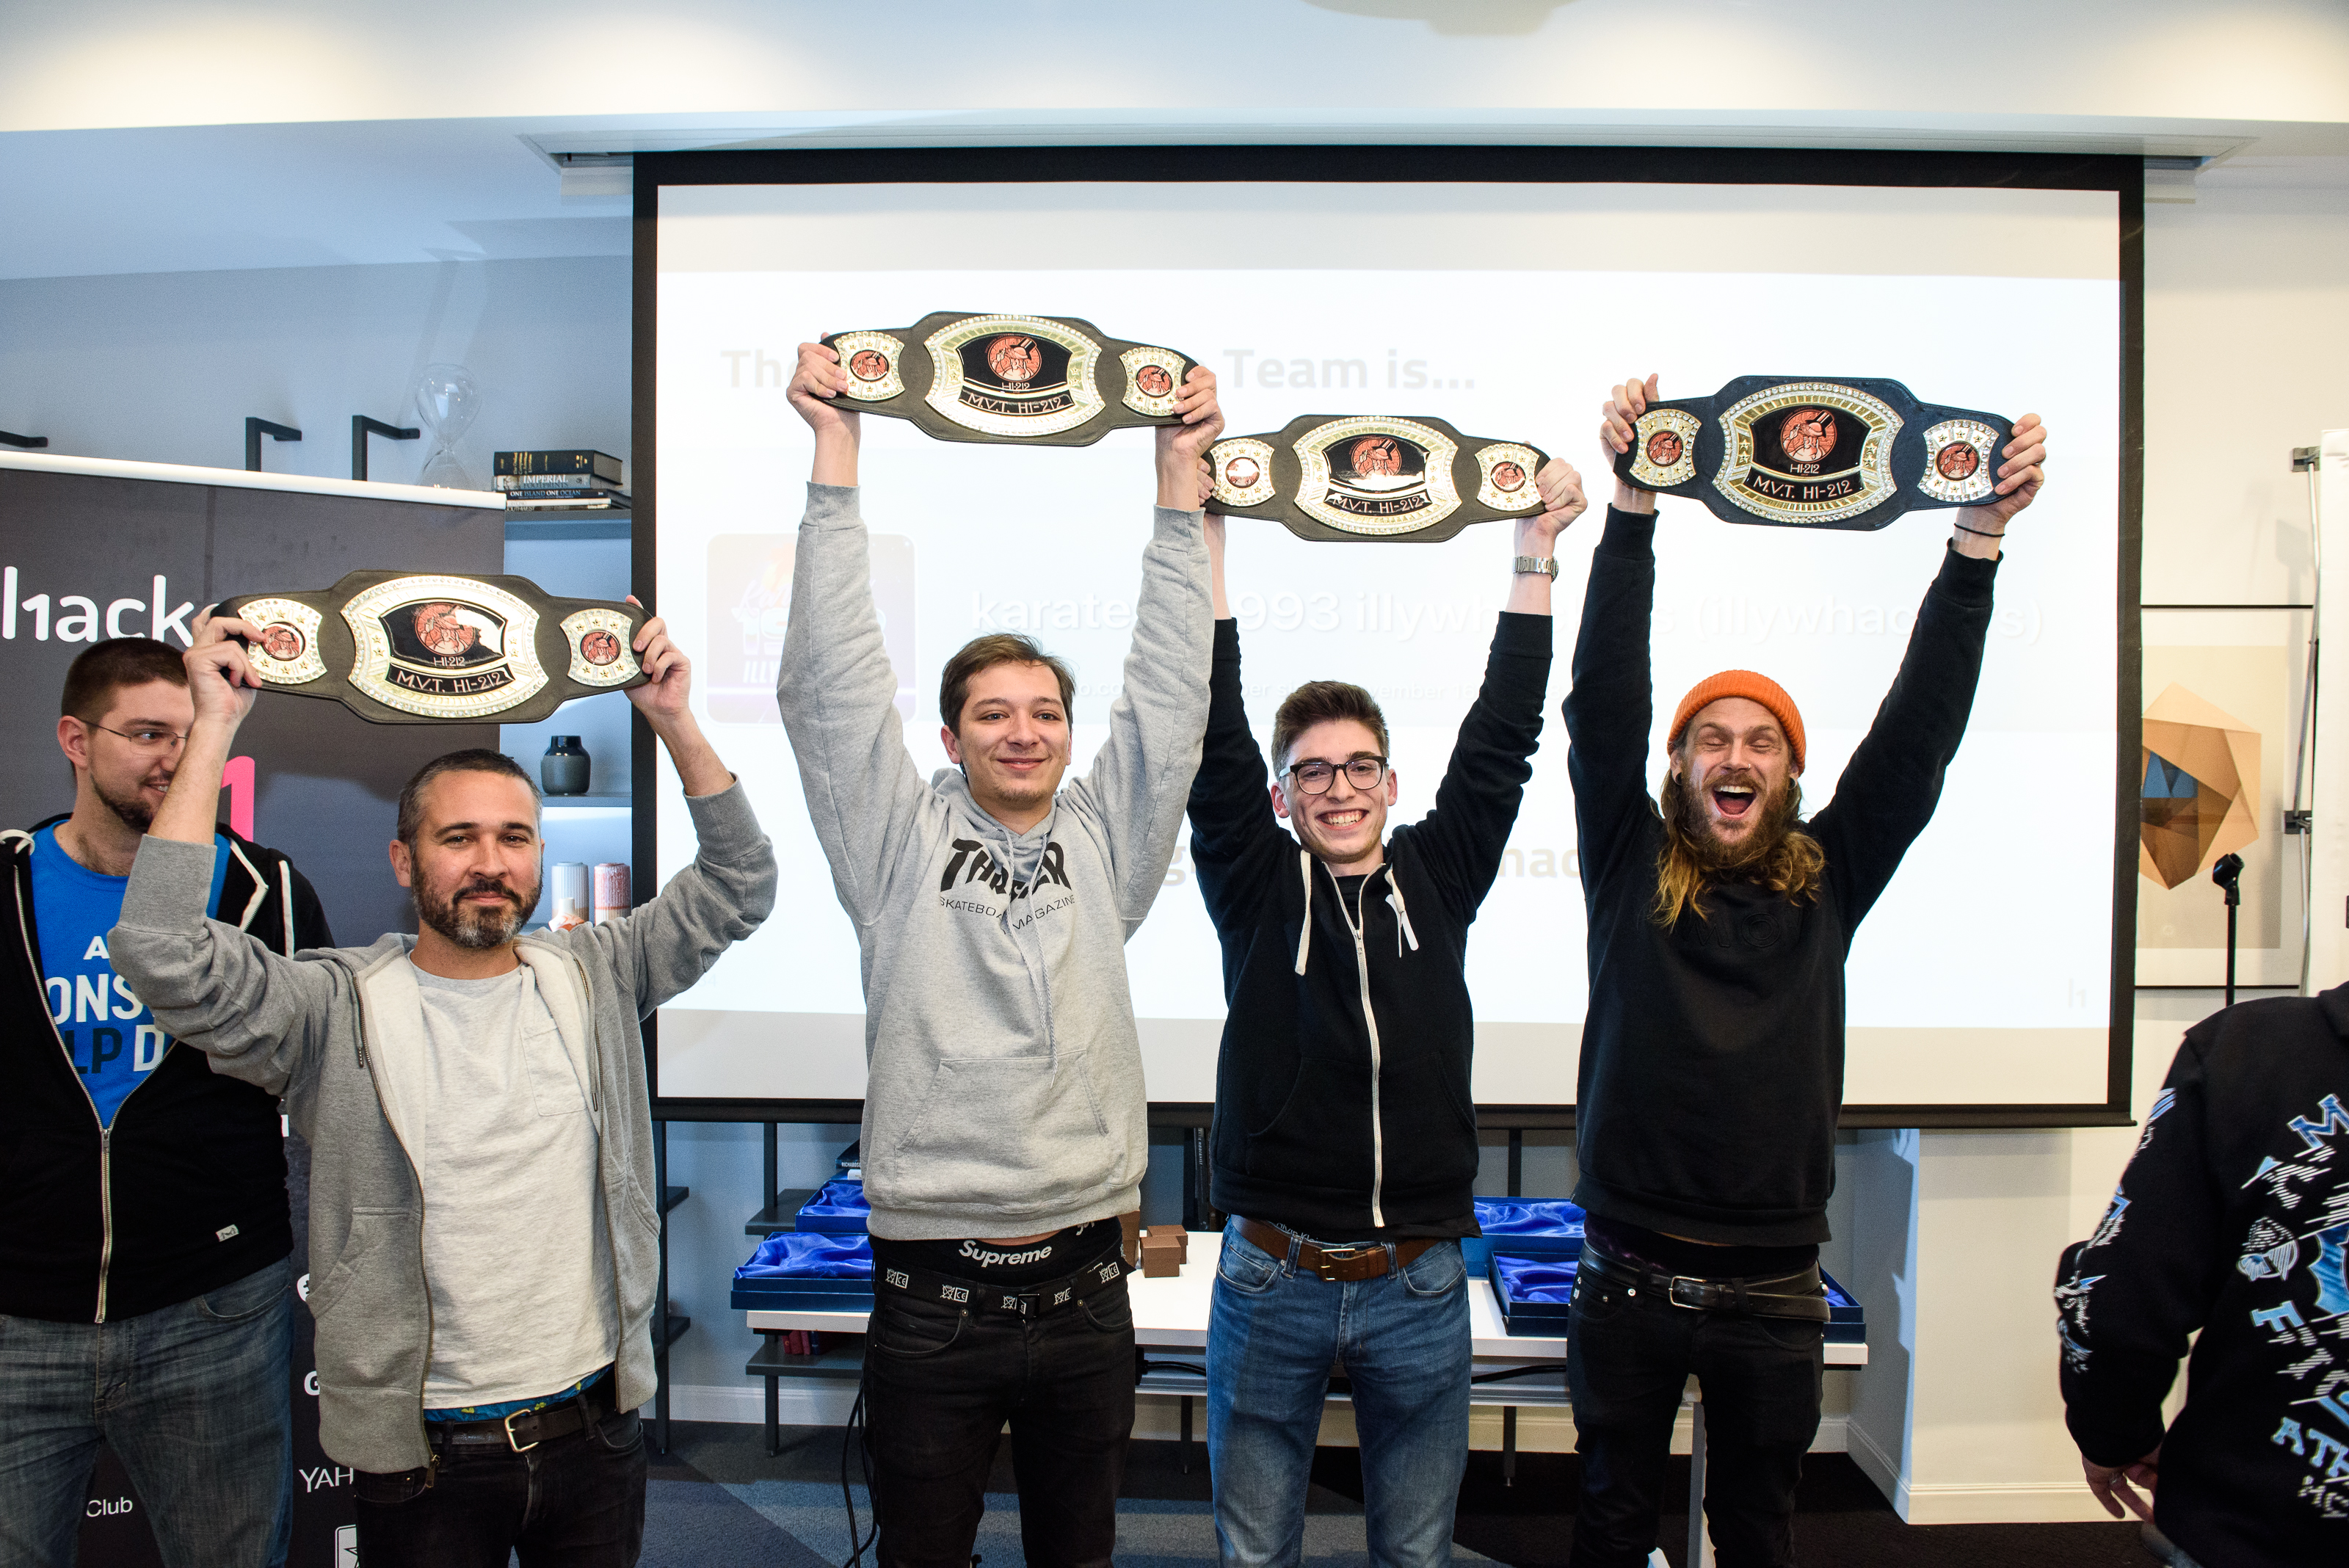 @johnny, @smiegles, @teknogeek and @stok pose with their Most Valuable Team belts at h1-212